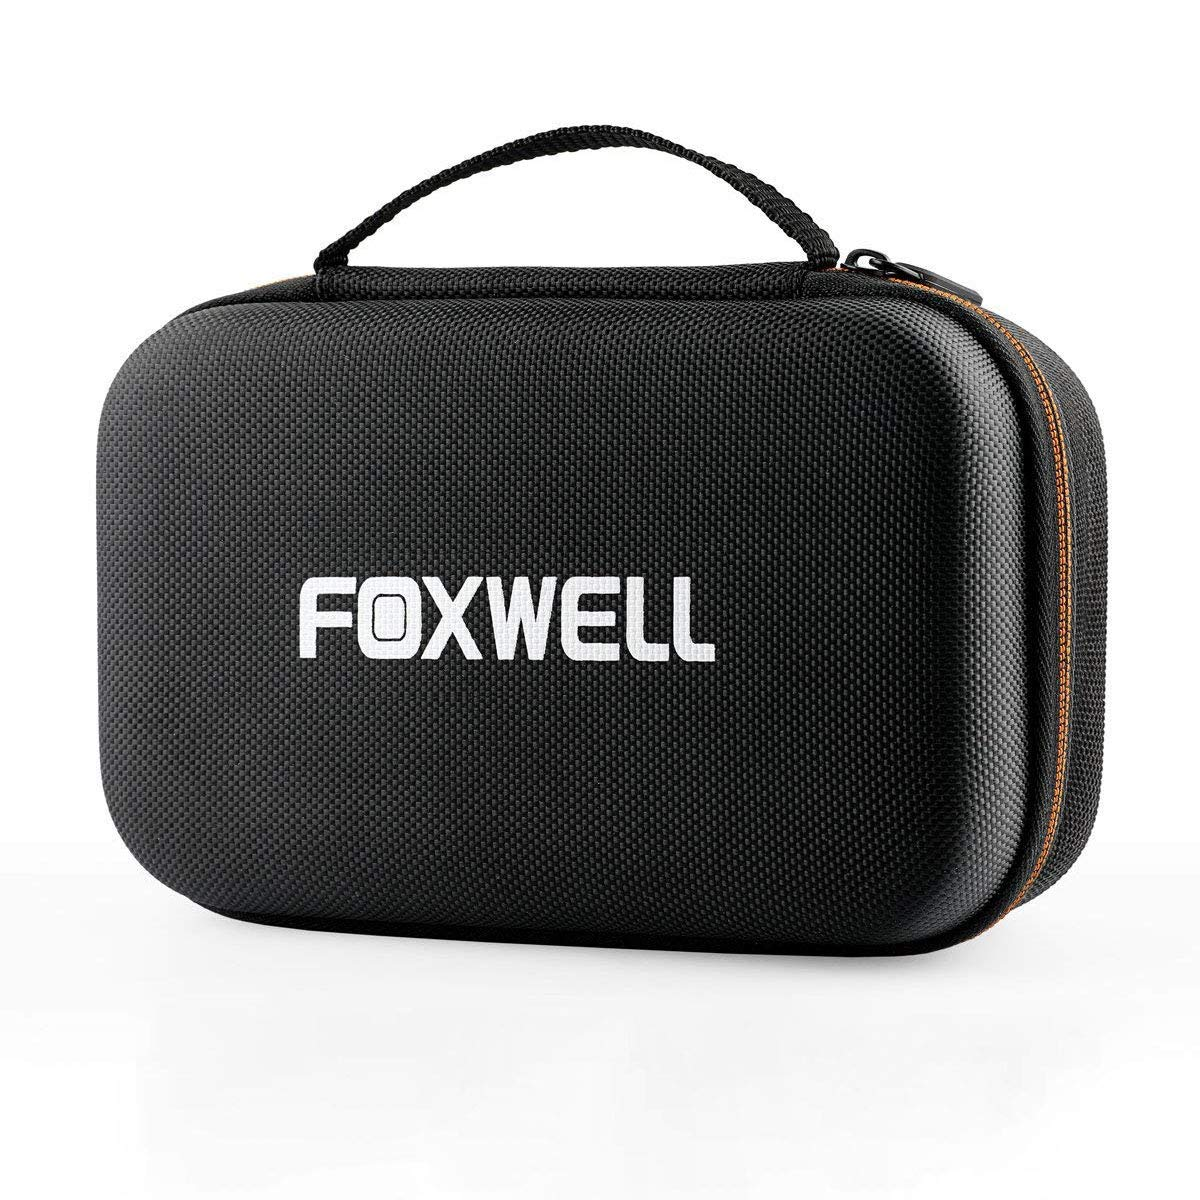 FOXWELL Original Protective Carring Storage Bag for NT201 NT301 NT301 Plus NT630 Plus OBD2 OBD II Automotive Code Reader Hard Case for OM126P AL319 Launch V+ V Plus